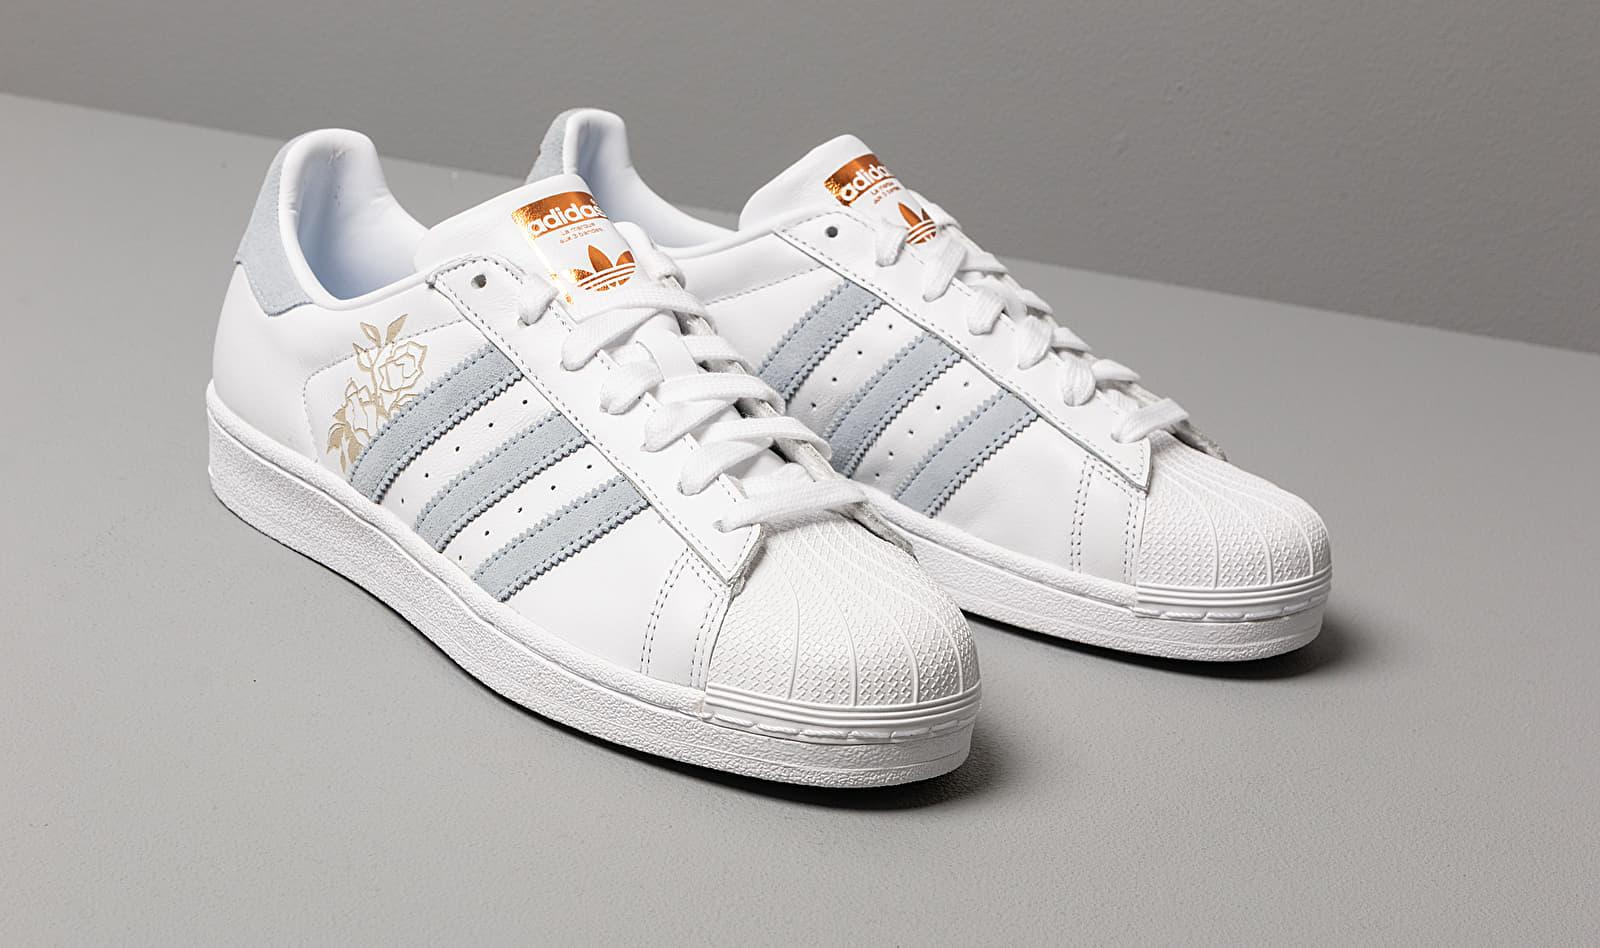 Adidas Superstar W Ftw White Periwinkle Copper Metalic